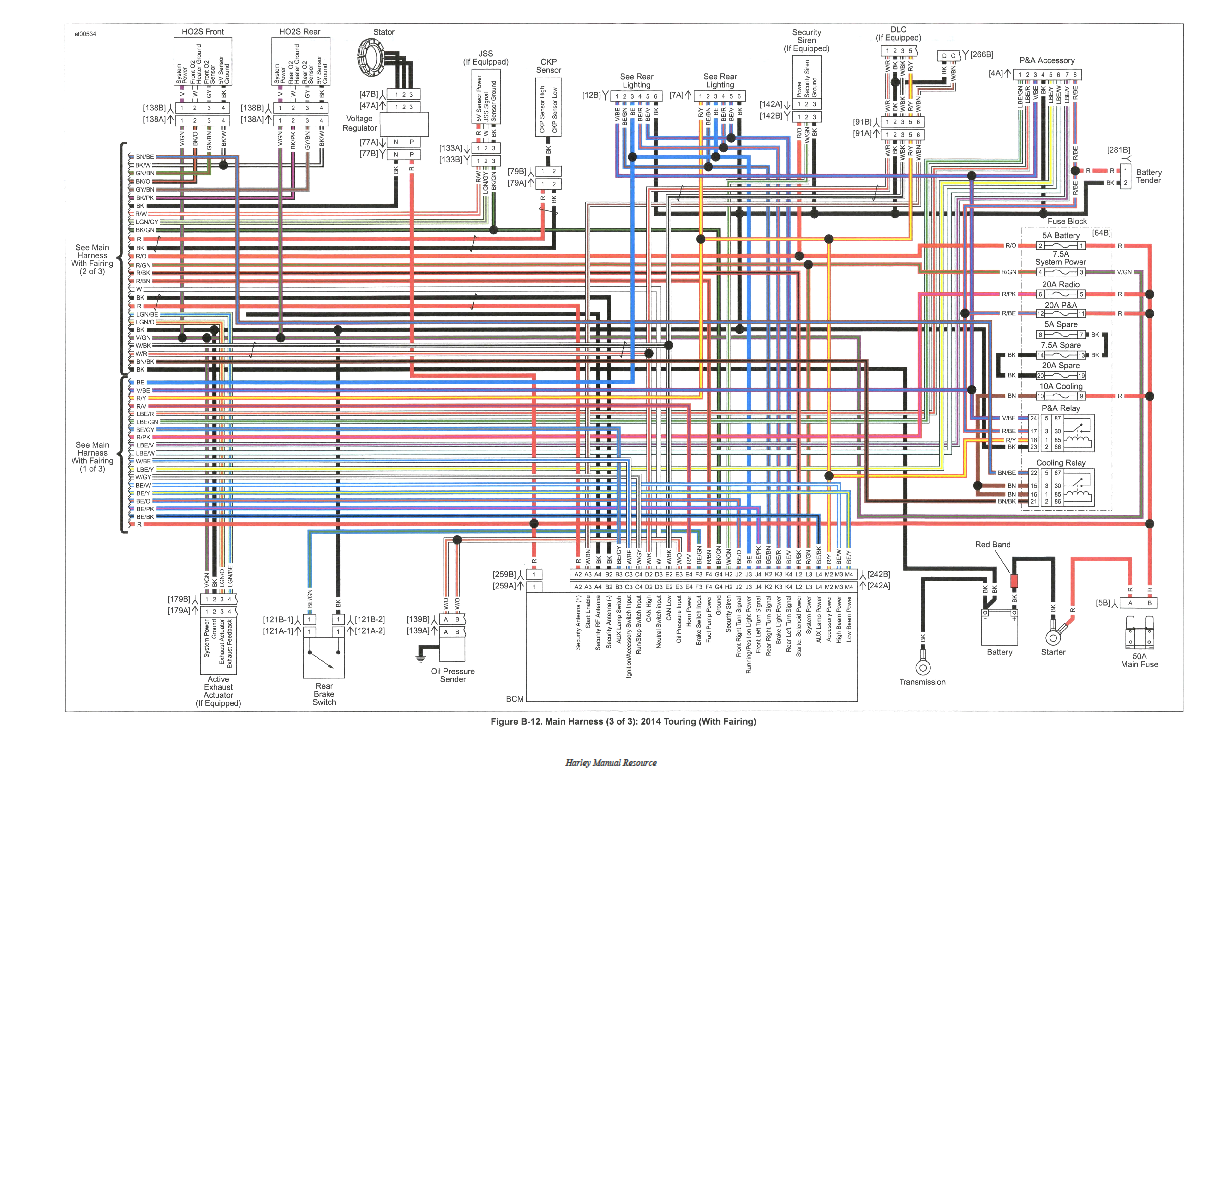 80 14_613_7162541d06ee90f59b30f0f216628817c66cf97f evo 80 softail wiring diagram diagram wiring diagrams for diy 1990 Softail Wiring Diagram at virtualis.co